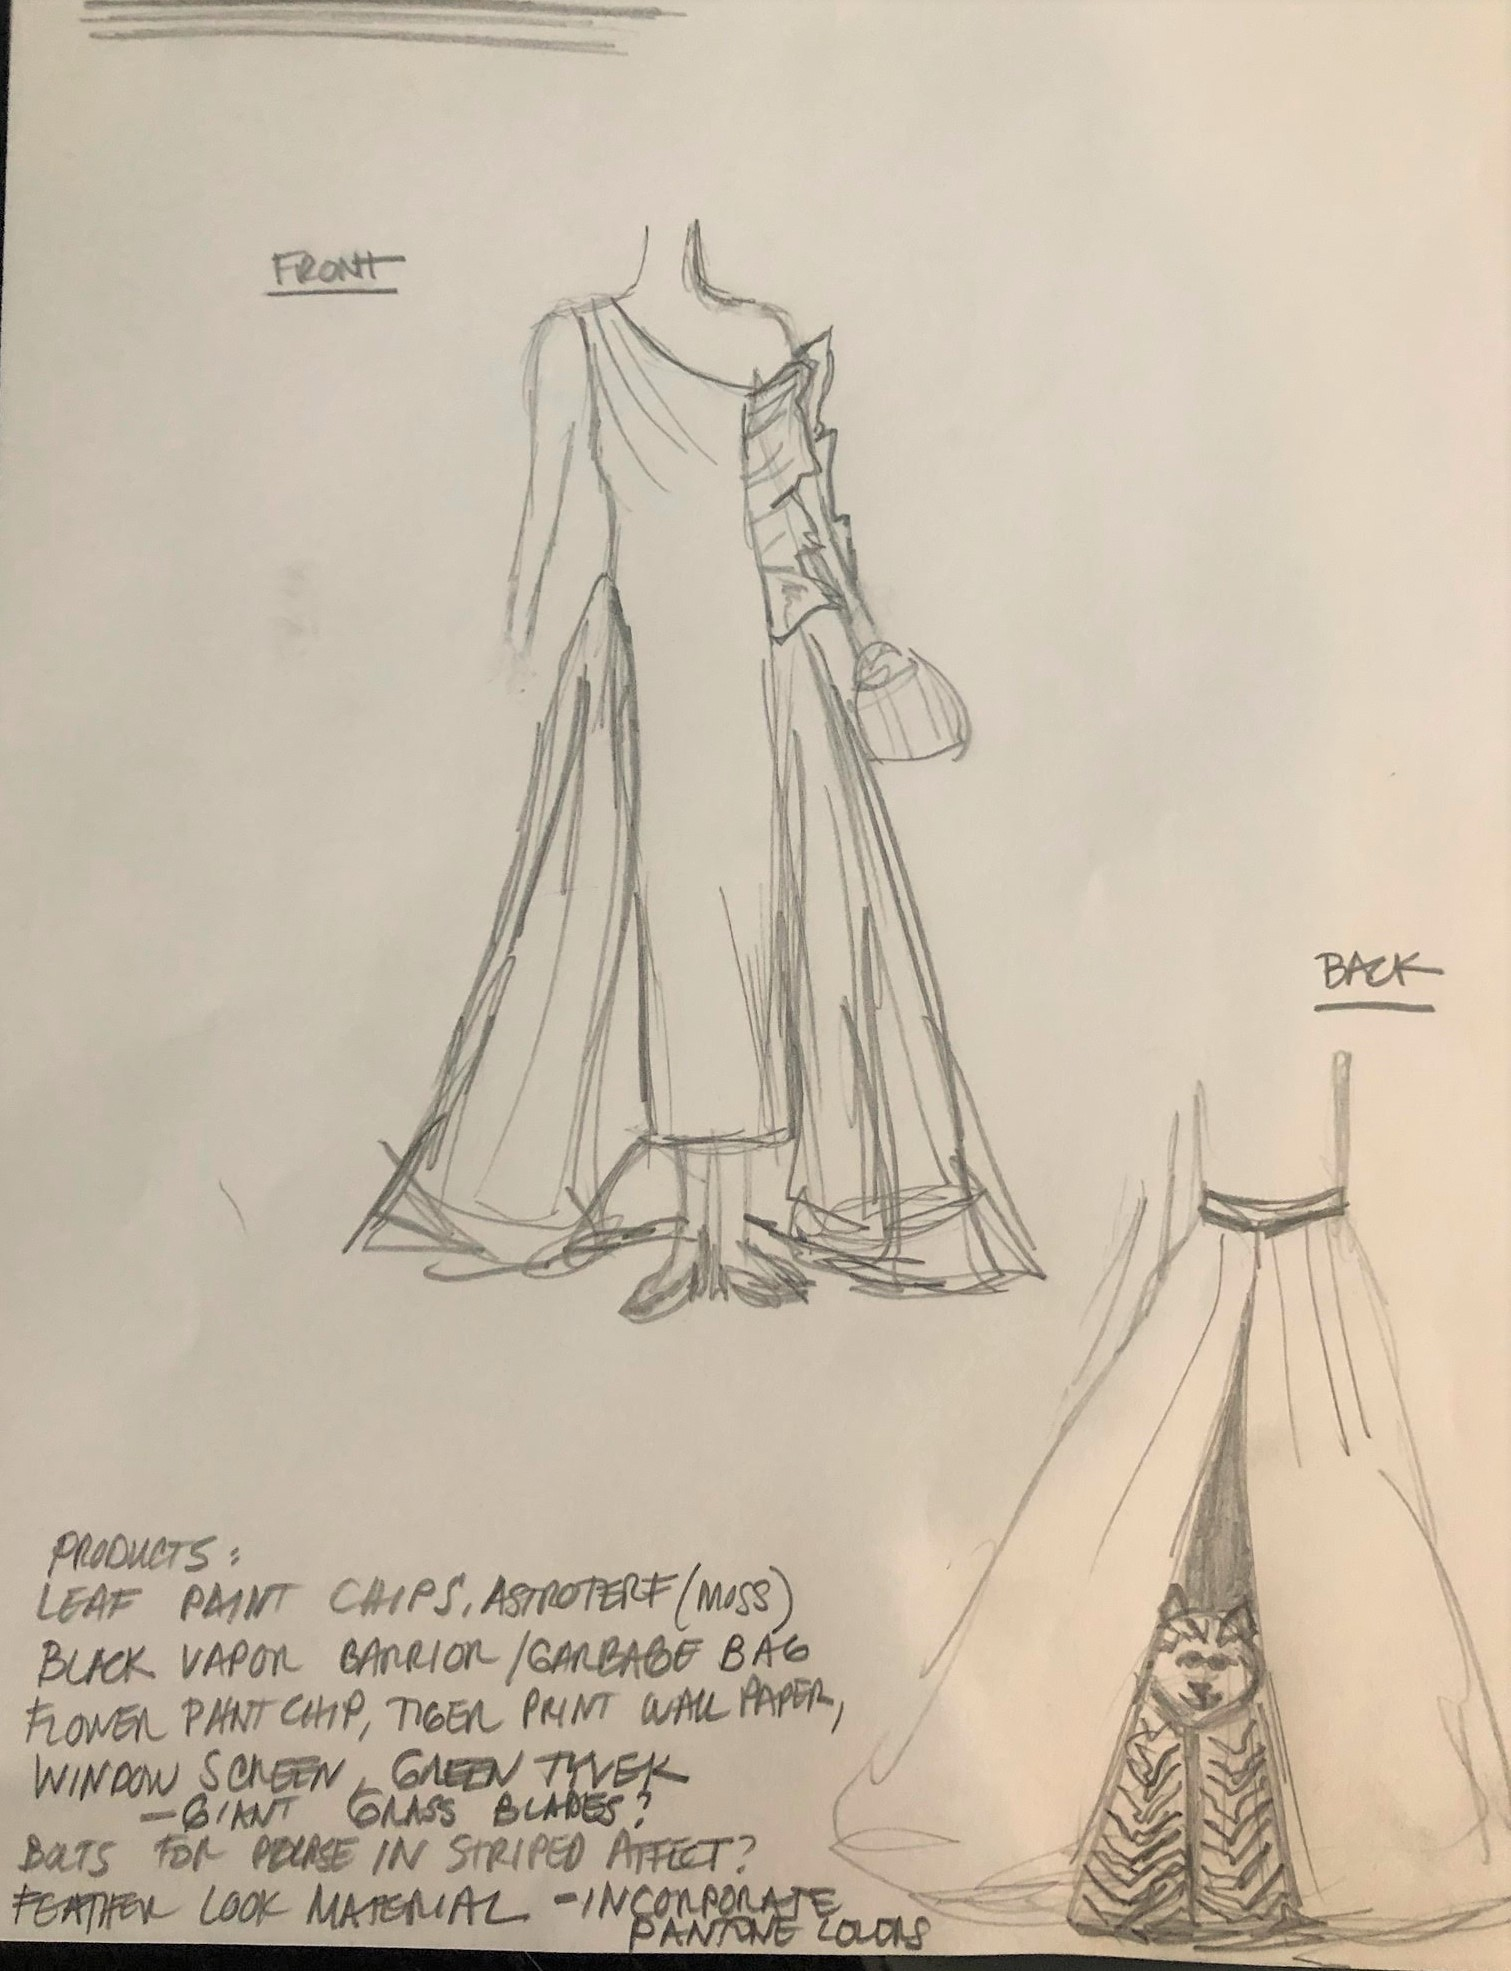 The preliminary sketch! We wanted a gown with a dramatic overskirt. Excited to get to work!